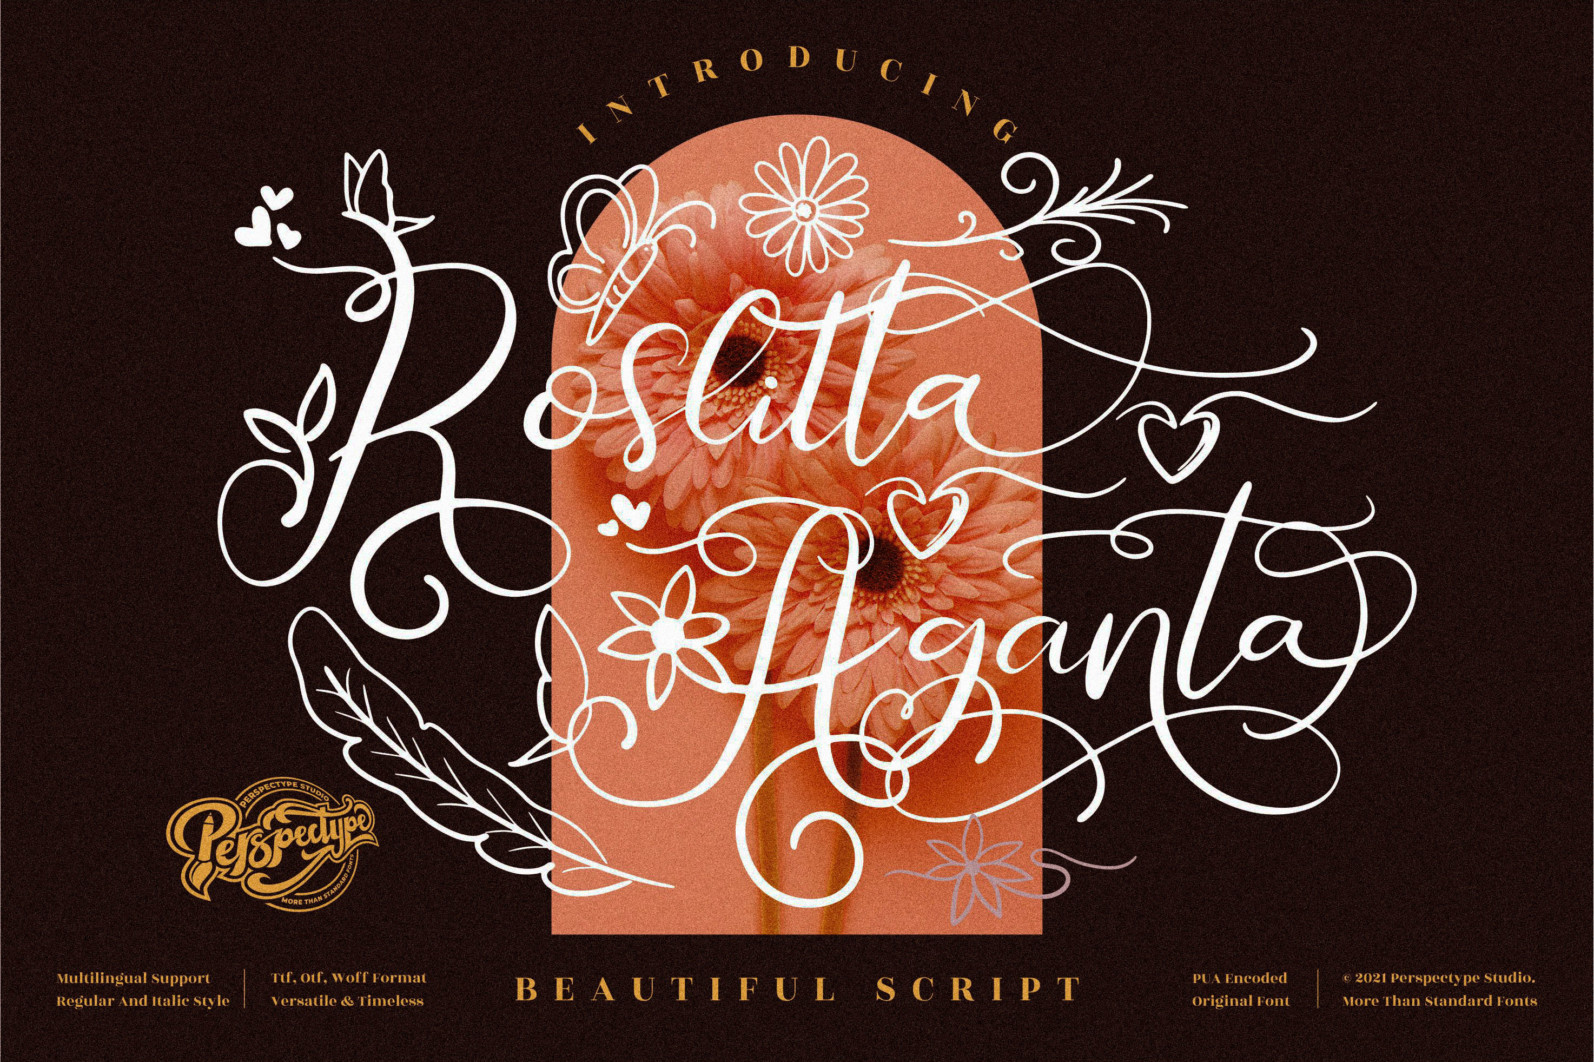 Love love Font Bundle from Perspectype Studio - 5 146 scaled -